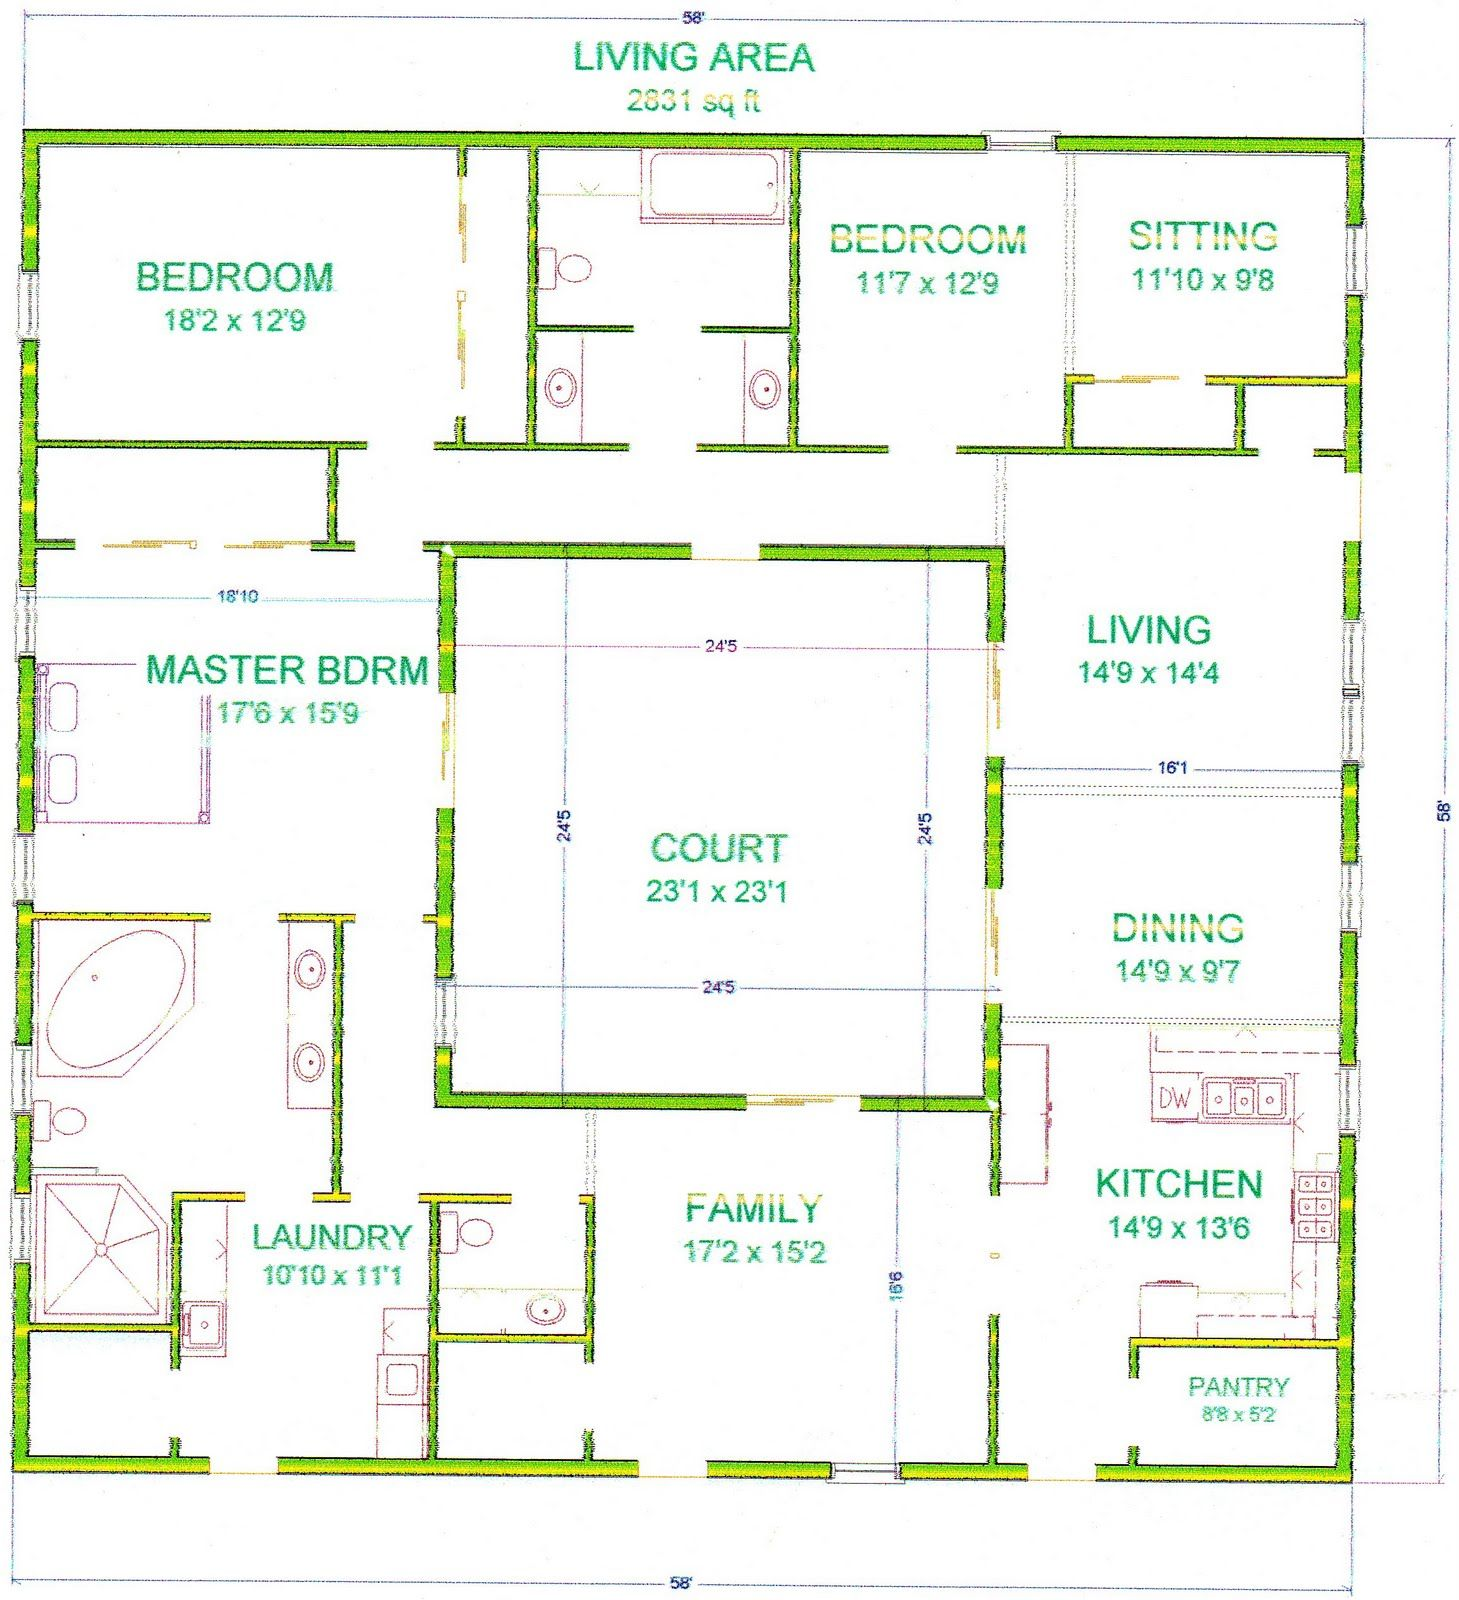 Grama Sue S Floor Plan Play Land Olivia S Courtyard Courtyard House Plans Container House Plans Courtyard House